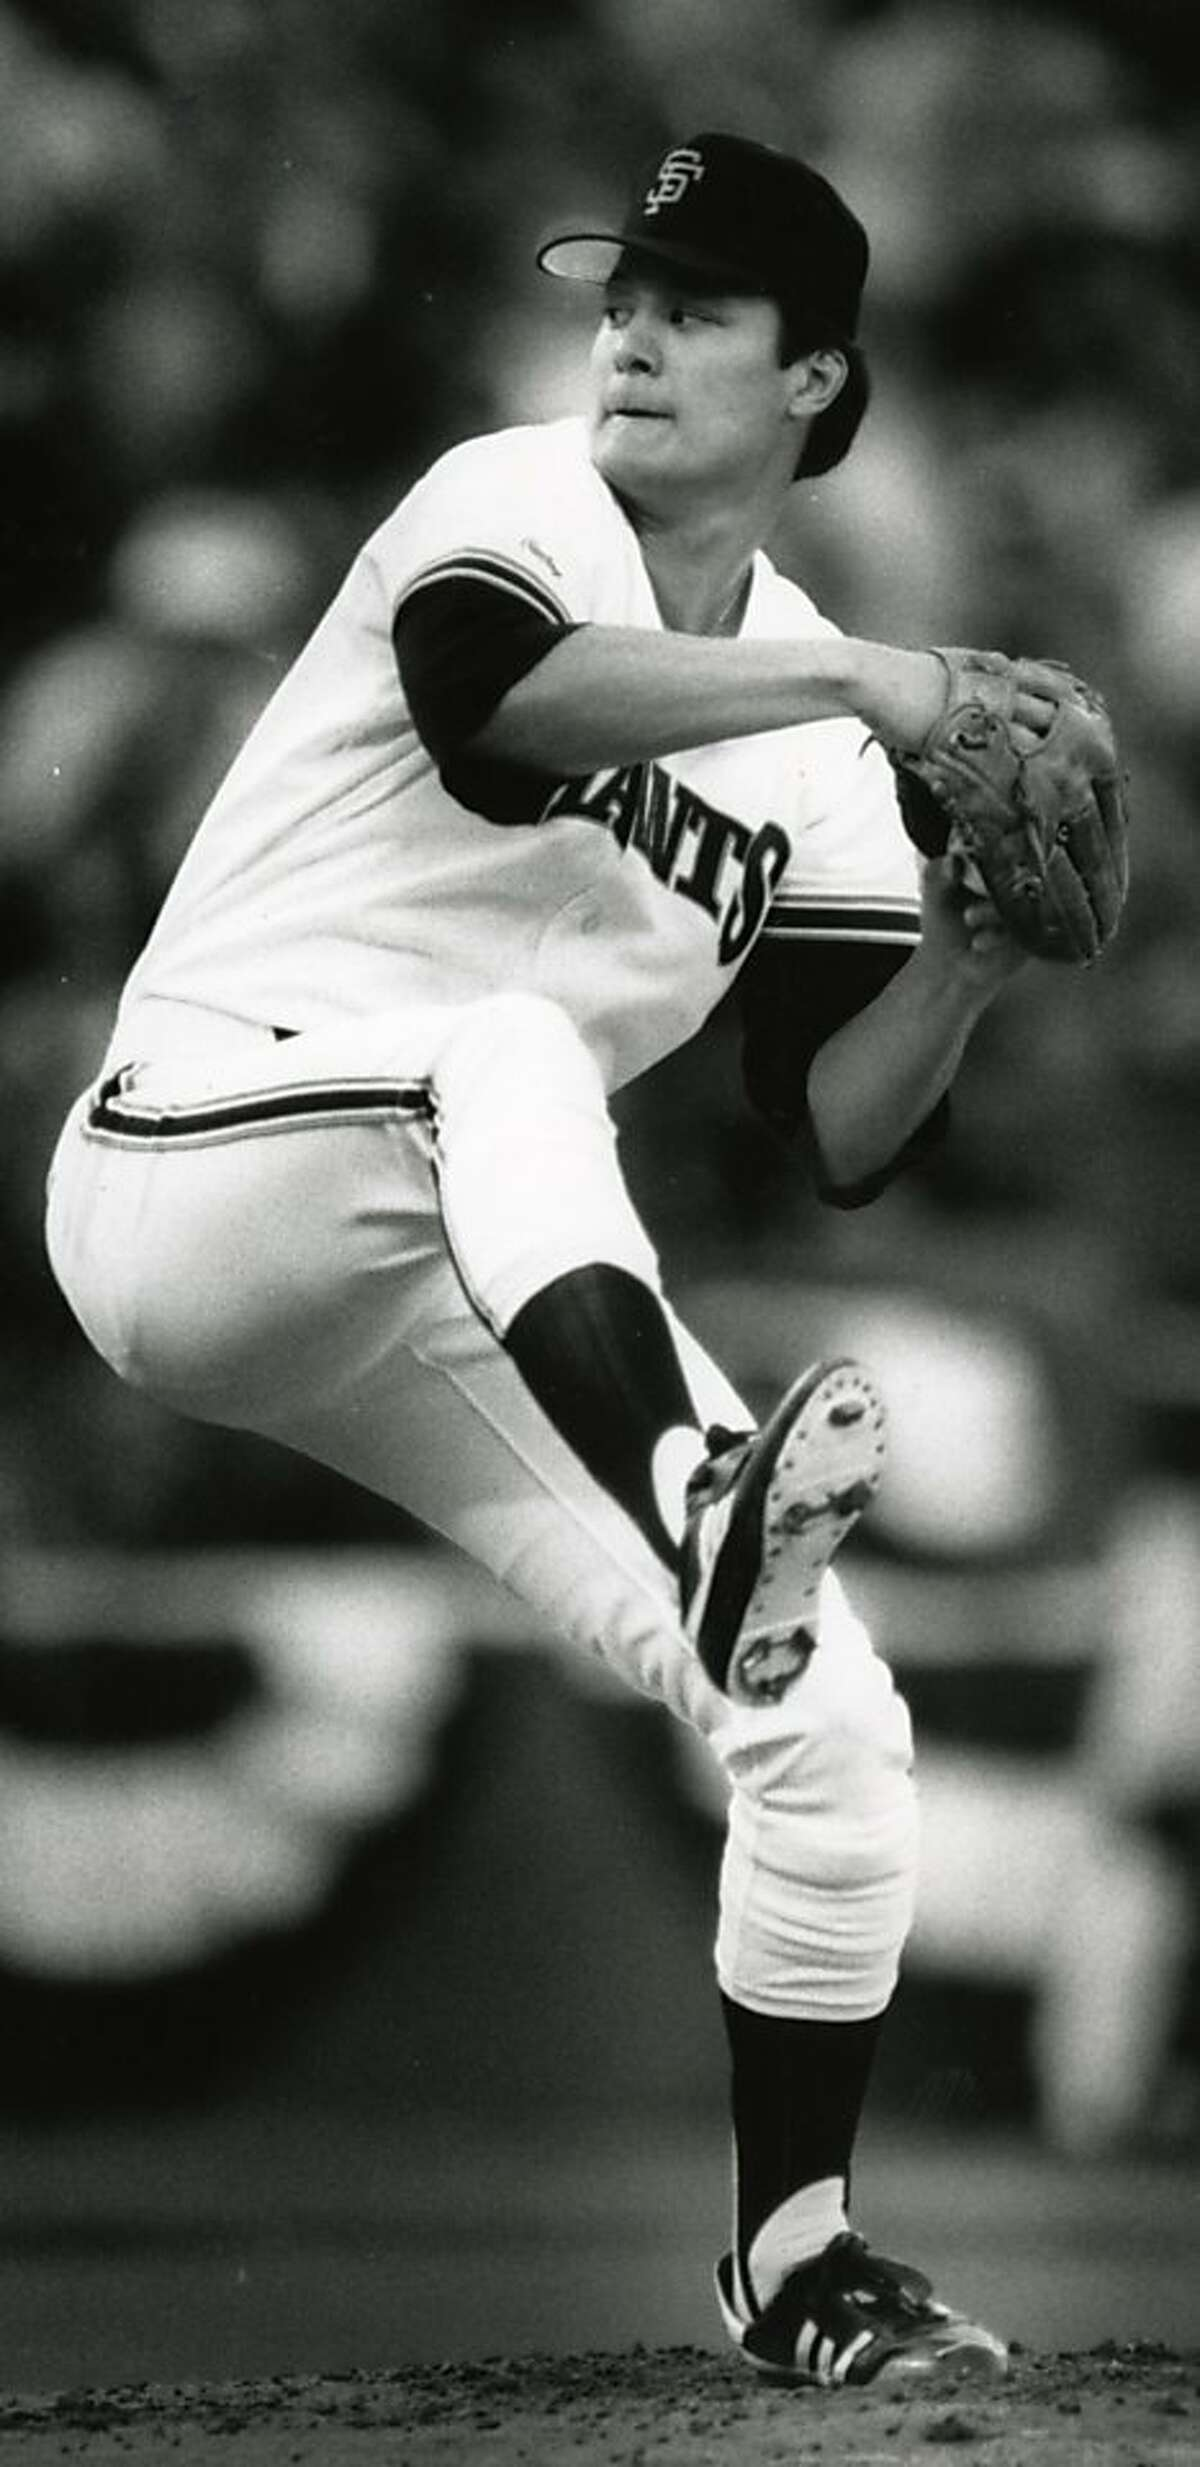 Atlee Hammaker pitching for the Giants in 1987.